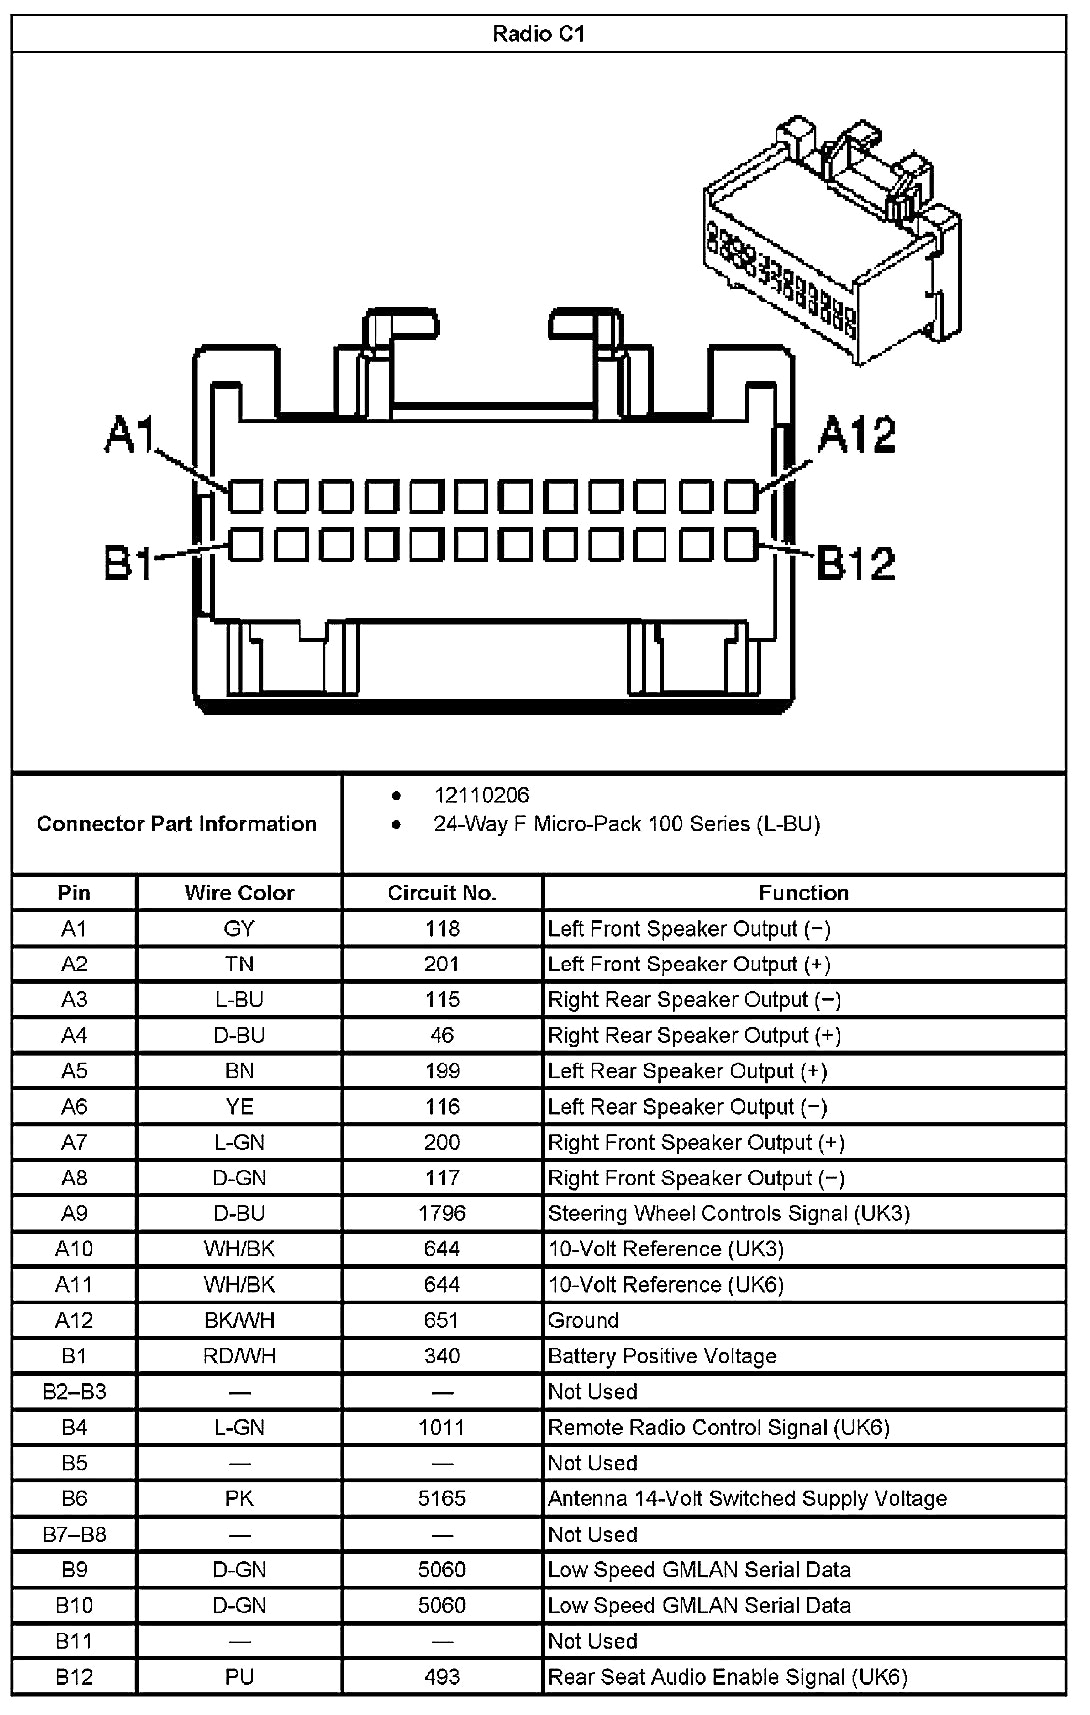 Jvc Car Stereo Wiring Diagram Adorable Bright Tearing Elektronik Us - Jvc Car Stereo Wiring Diagram